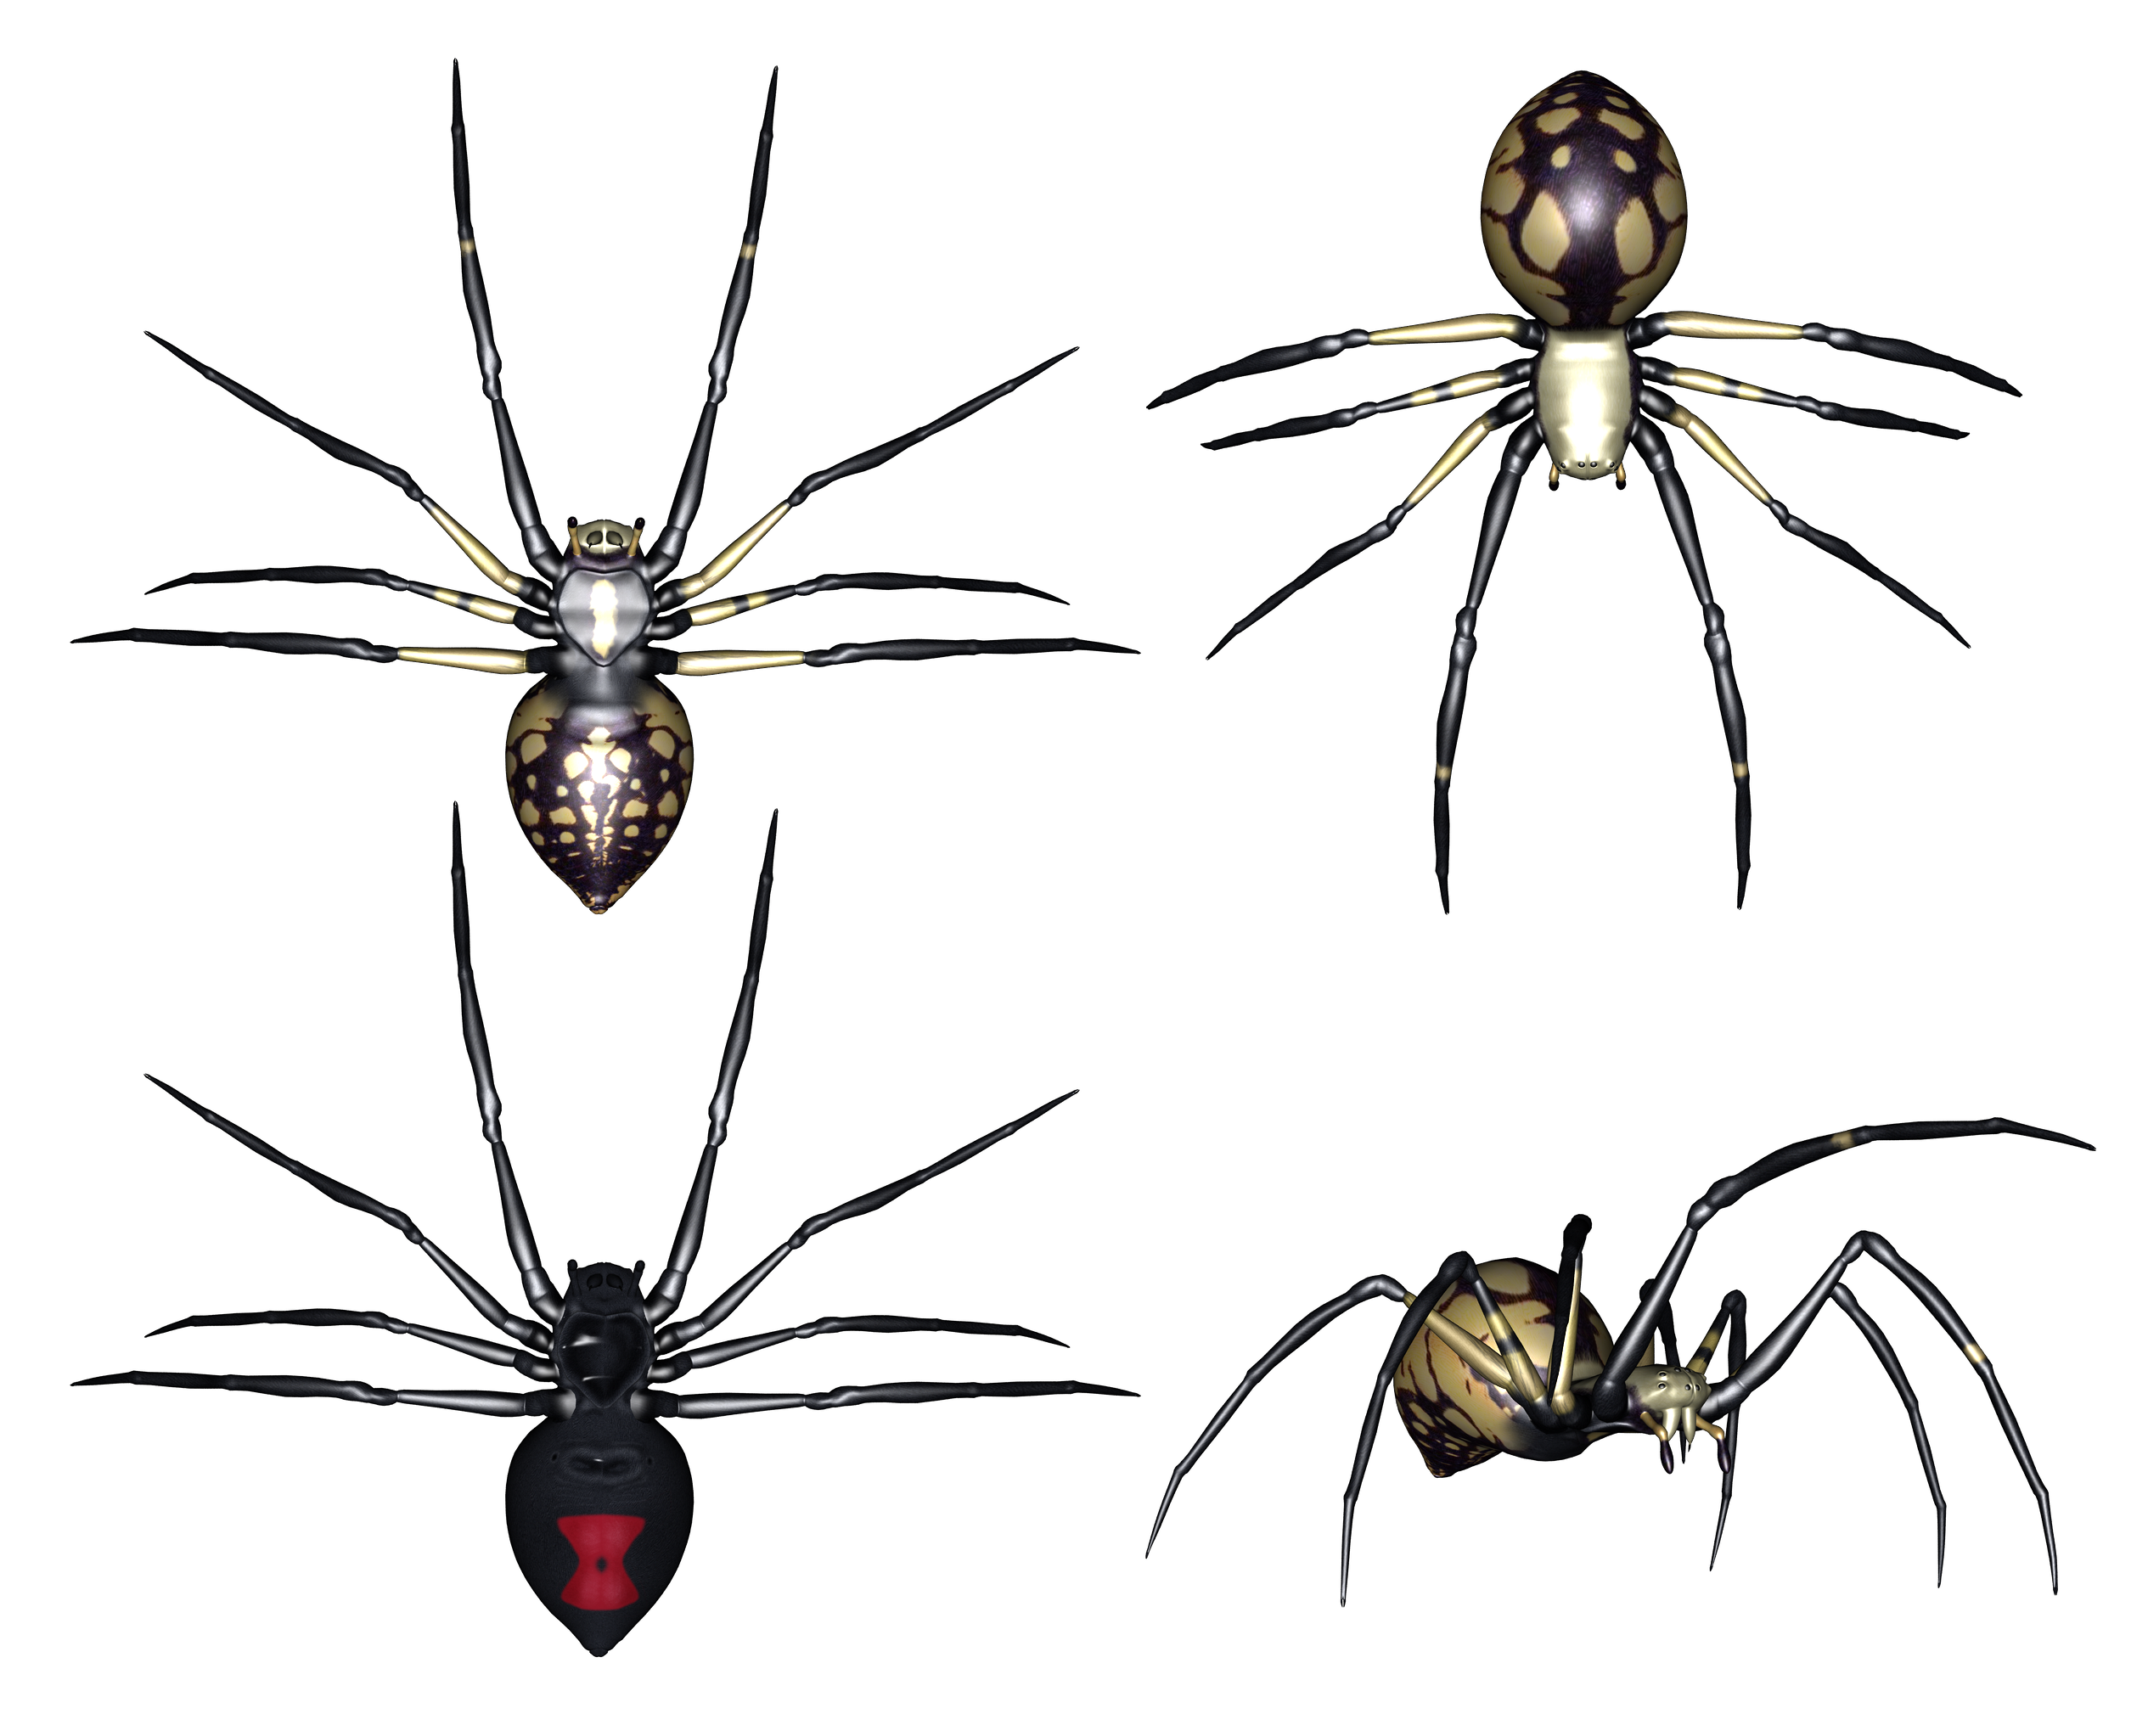 Parasitism drawing arachnids. Set of spiders clipart